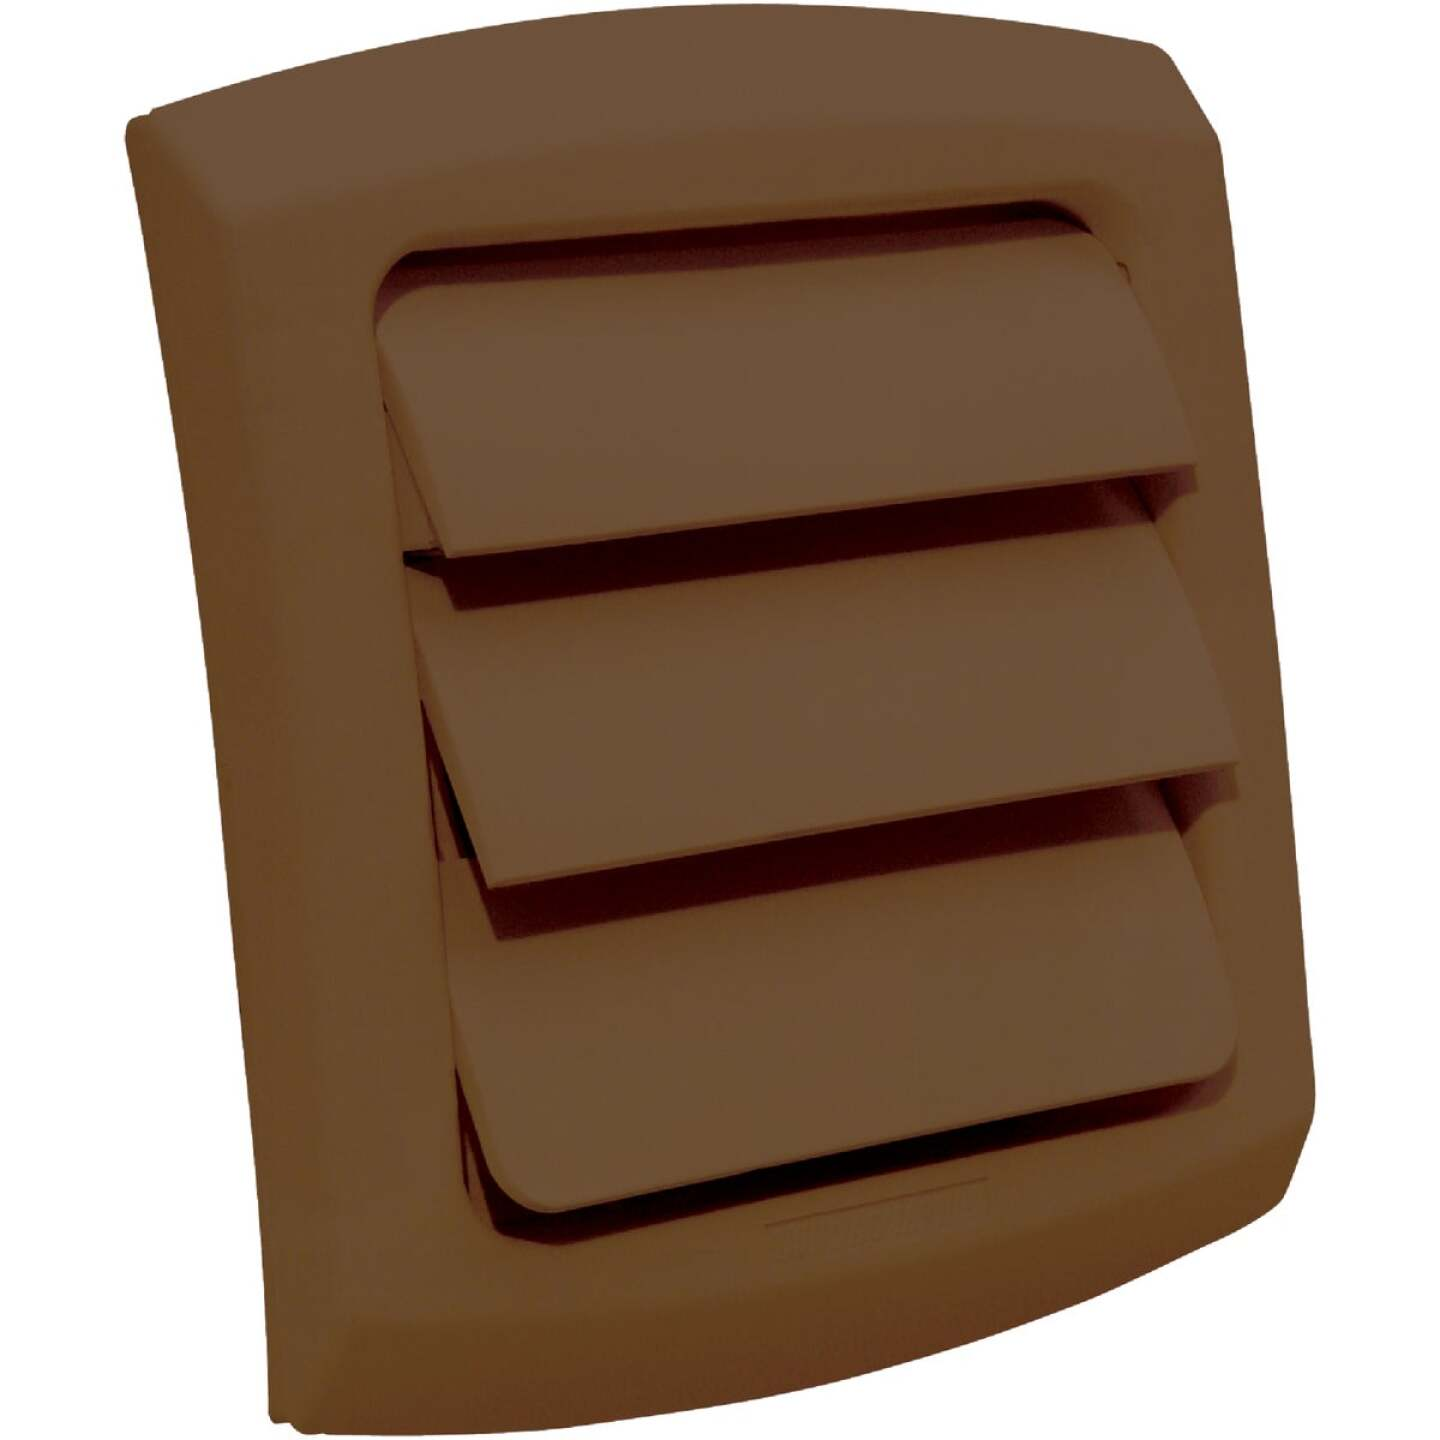 Dundas Jafine ProVent 4 In. Brown Plastic Replacement Vent Cap Image 1